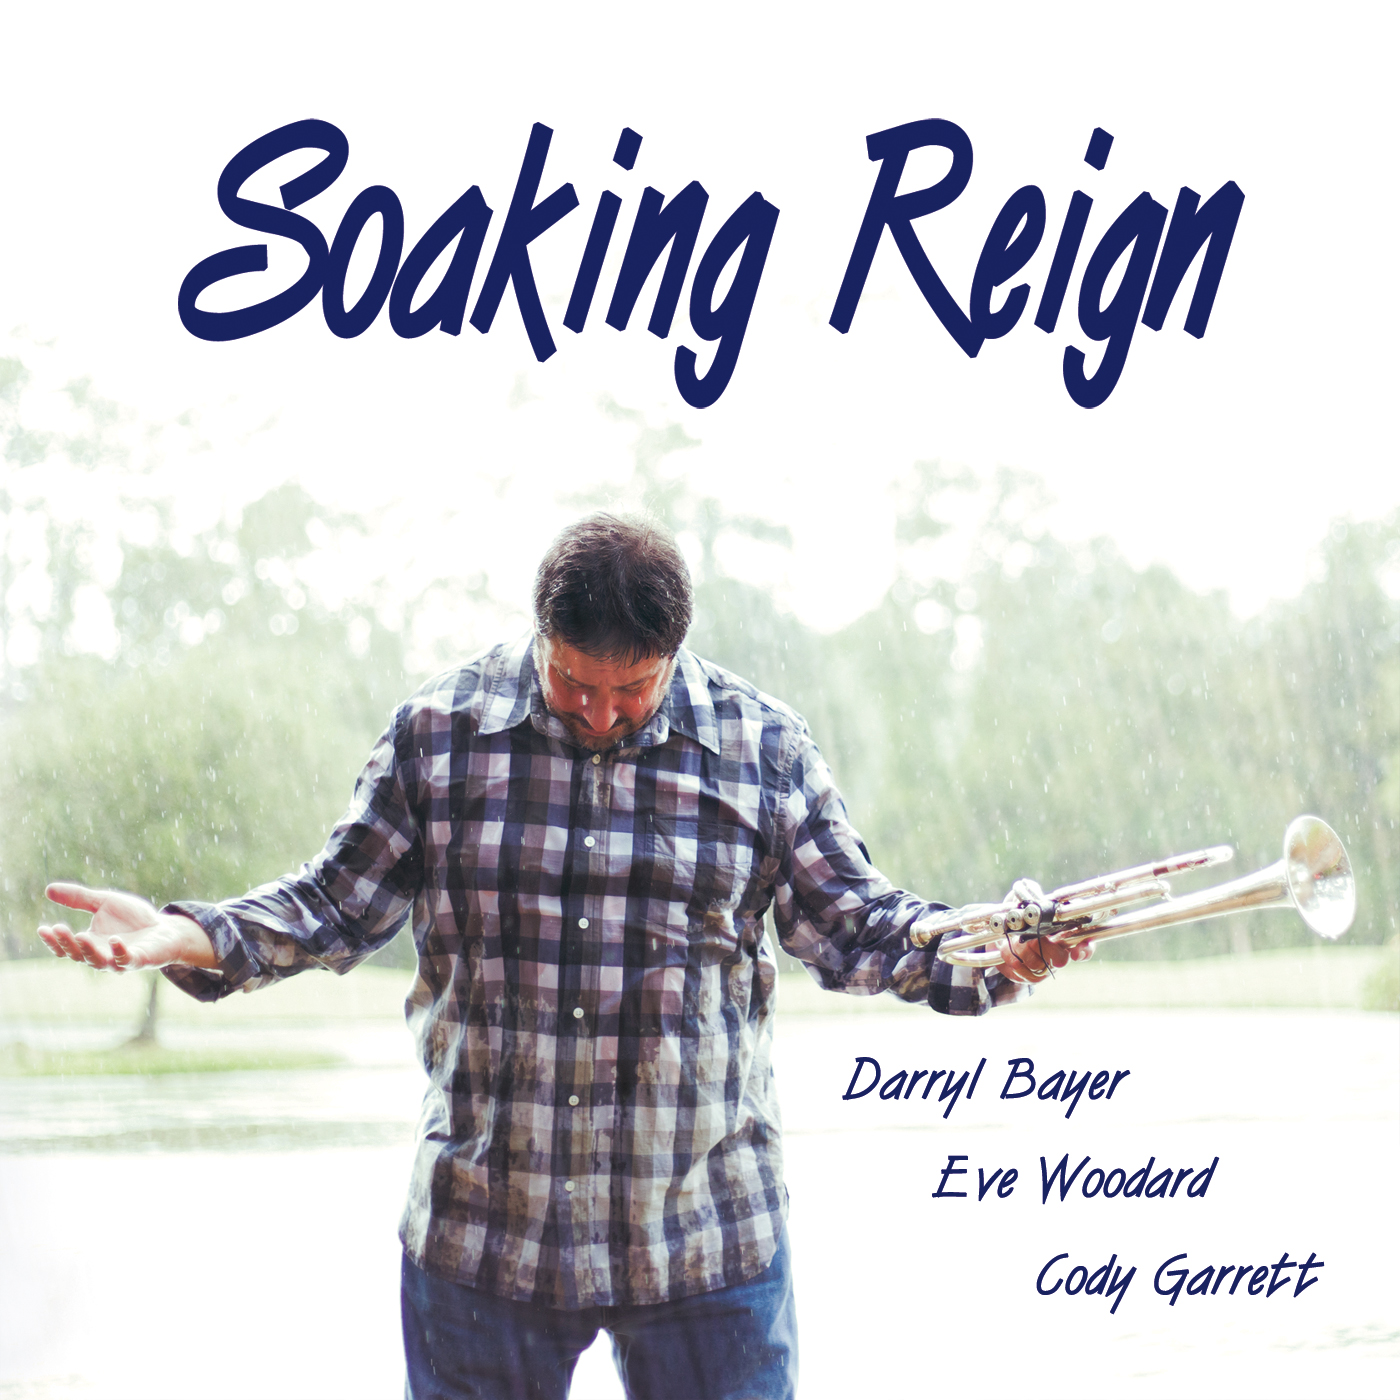 Darryl Bayer's First Ever Trumpet Soaking CD, Soaking Reign